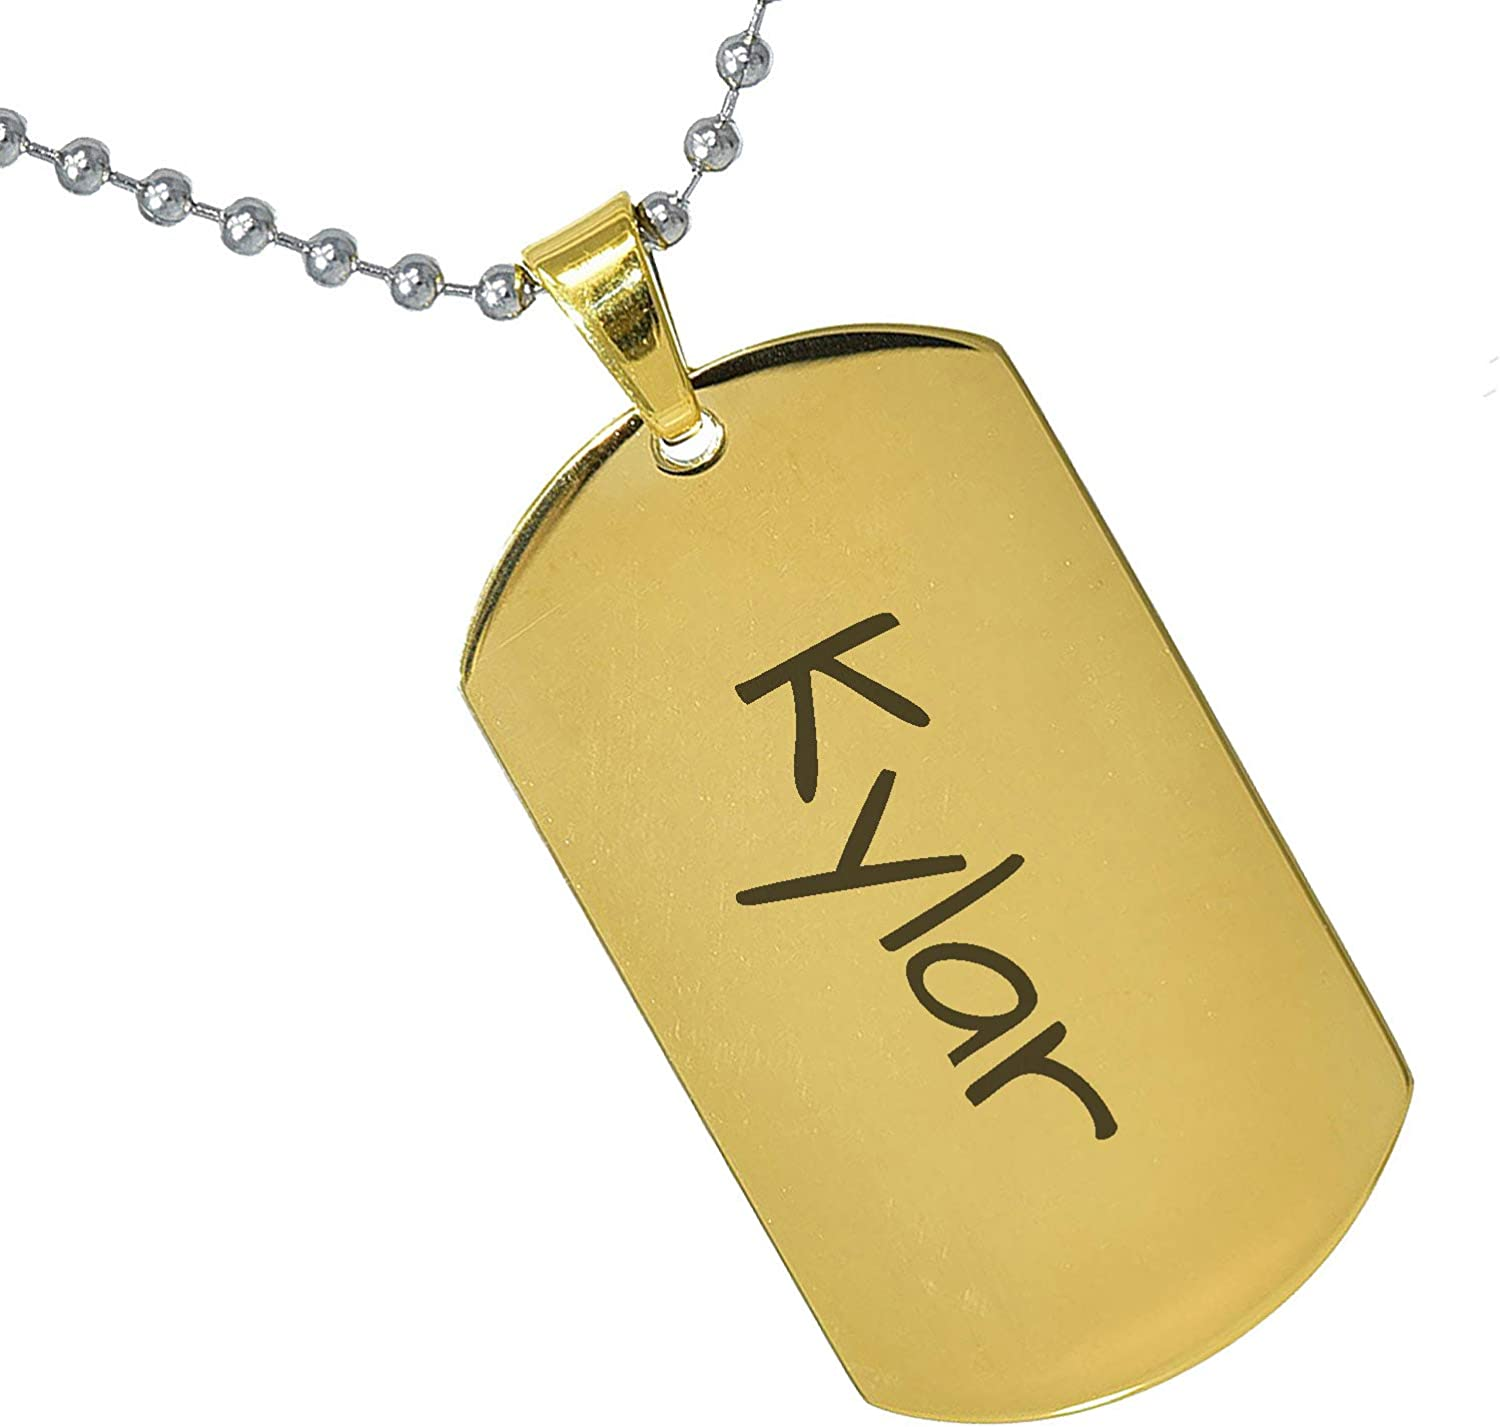 Stainless Steel Silver Gold Black Rose Gold Color Baby Name Kylar Engraved Personalized Gifts For Son Daughter Boyfriend Girlfriend Initial Customizable Pendant Necklace Dog Tags 24 Ball Chain